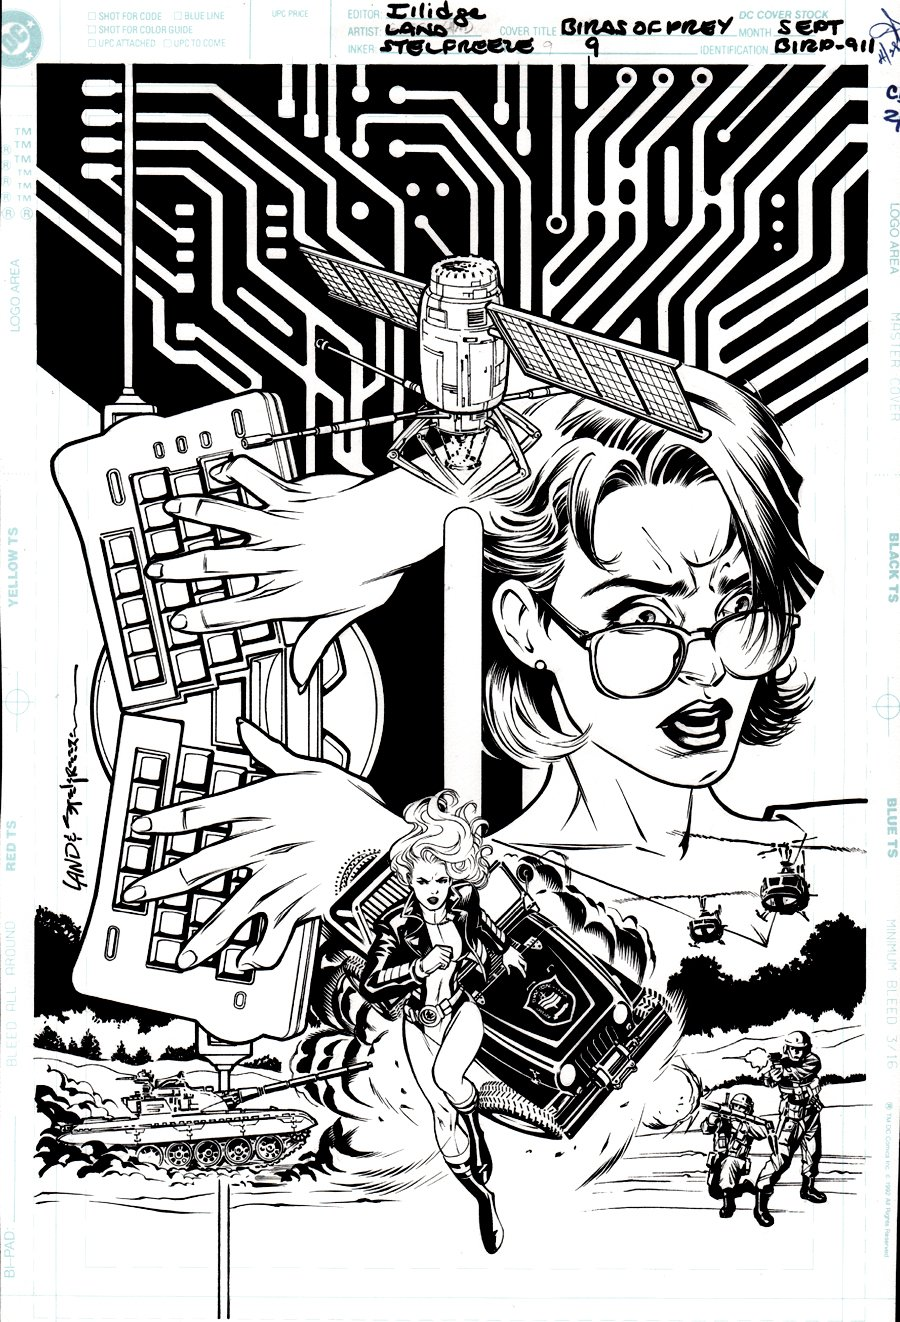 Birds of Prey #9 Cover (Black Canary, Oracle!) 1999